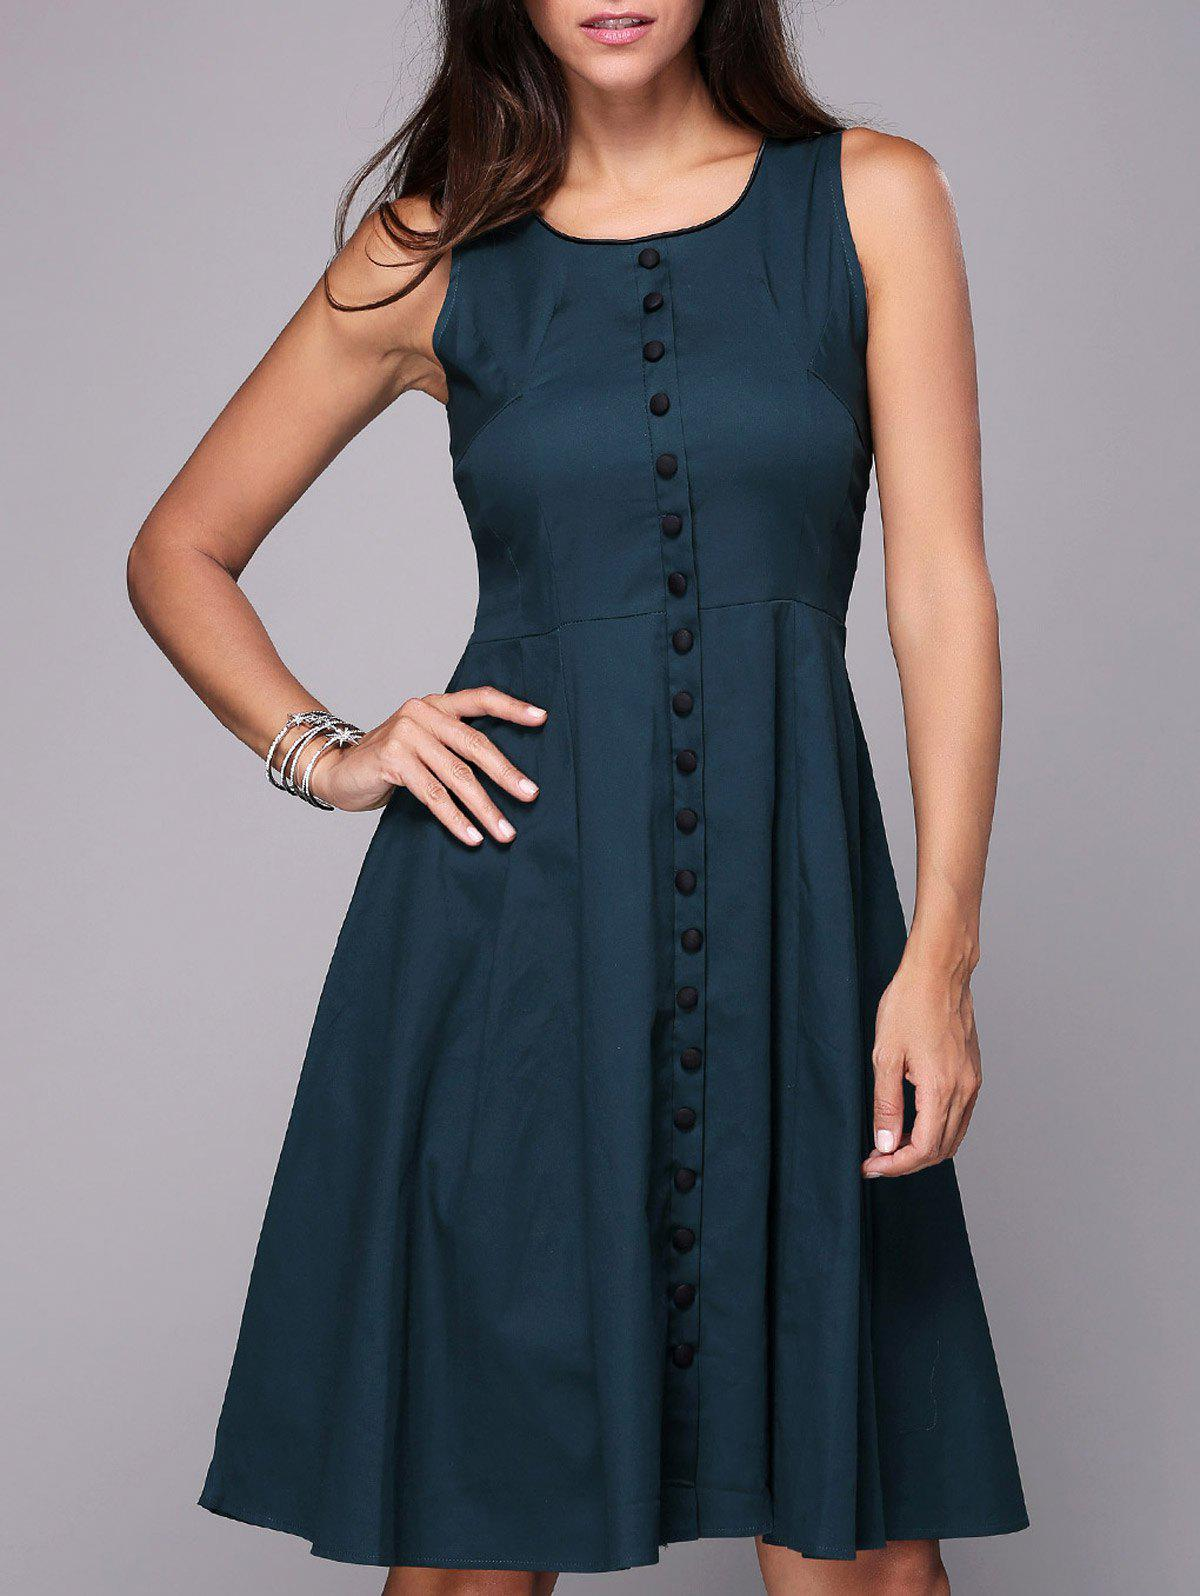 Sleeveless Button Up Fit and Flare Dress